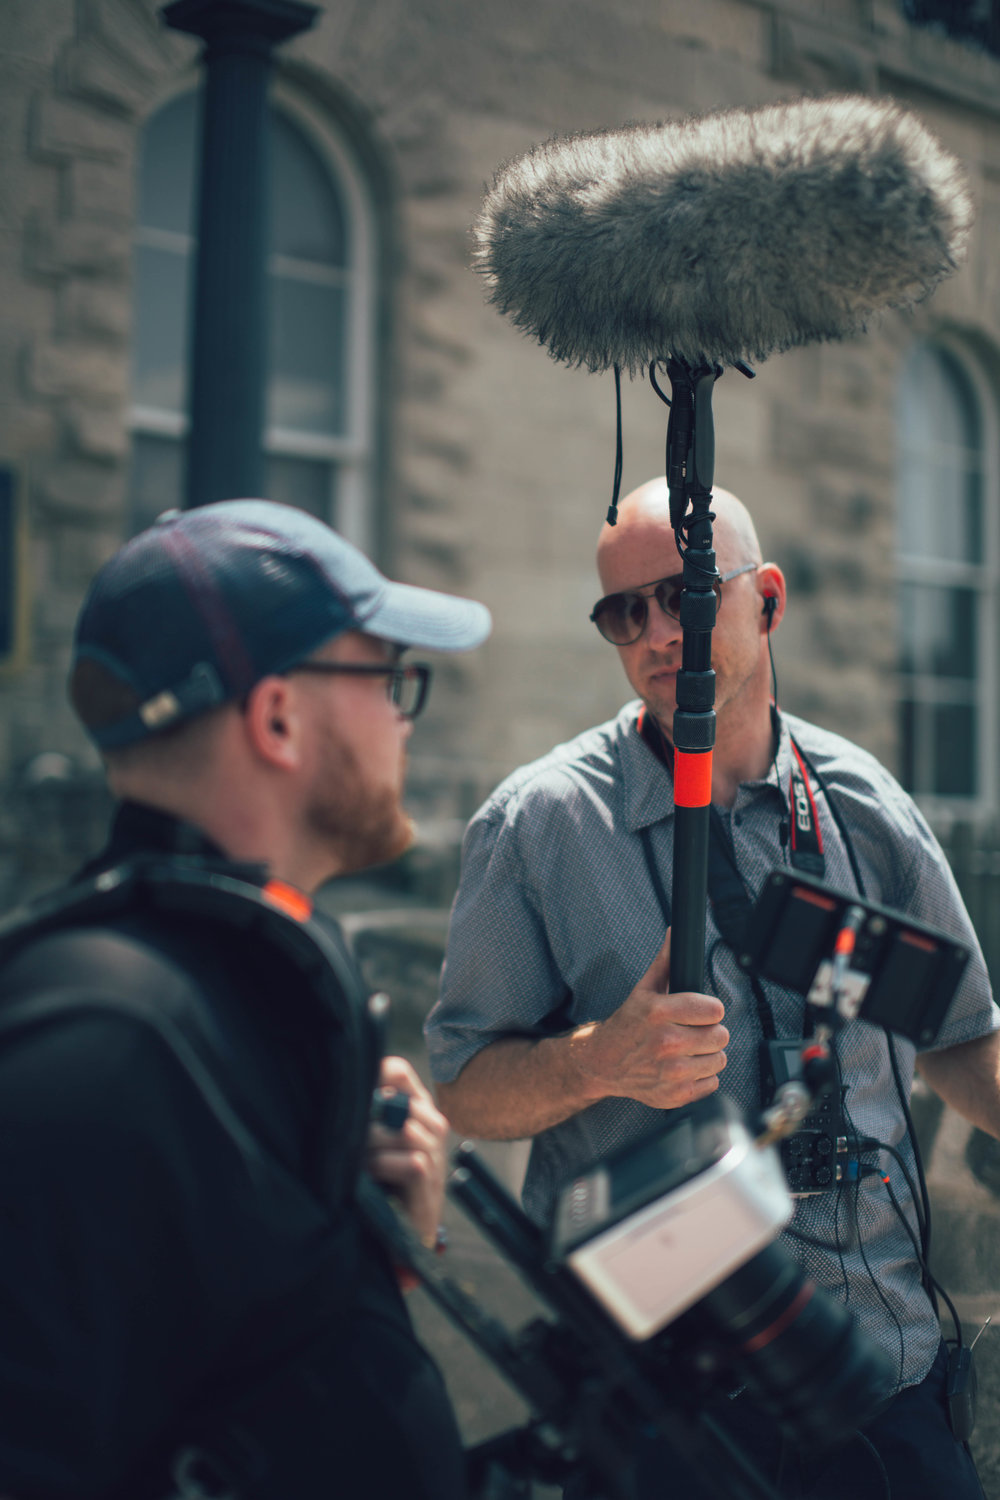 Audio and Sound Mixing - Our audio operators and sound mixers can handle any situation, whether you're speaking in a large echoing room or outside on a windy day. We'll bring all the gear you need to make sure everyone who's speaking sounds clear and true.